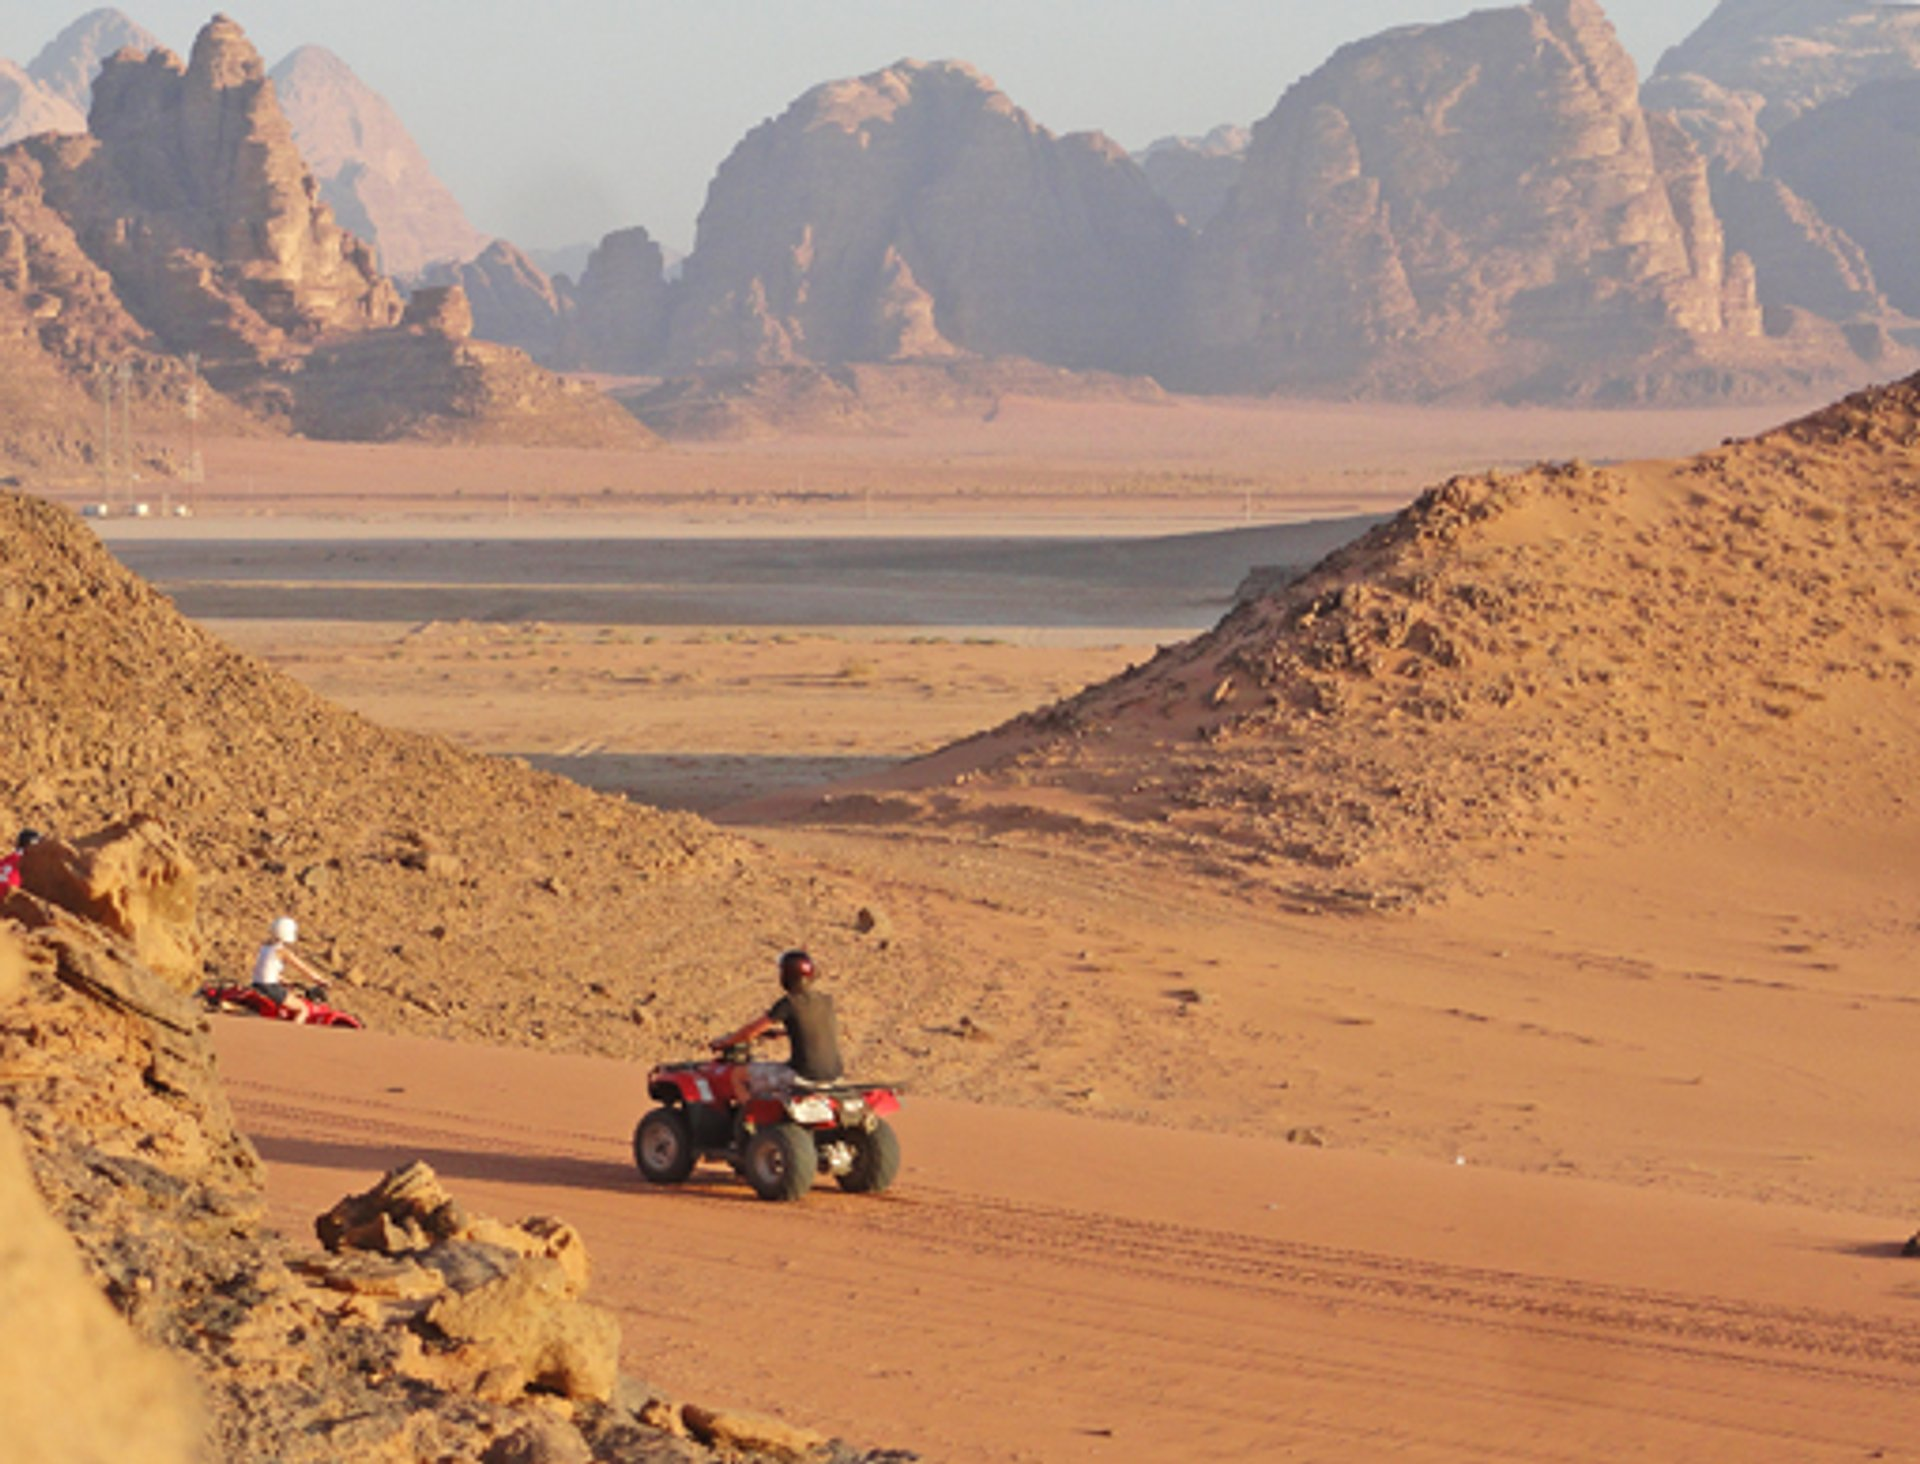 Desert ATVs at Wadi Rum 2019